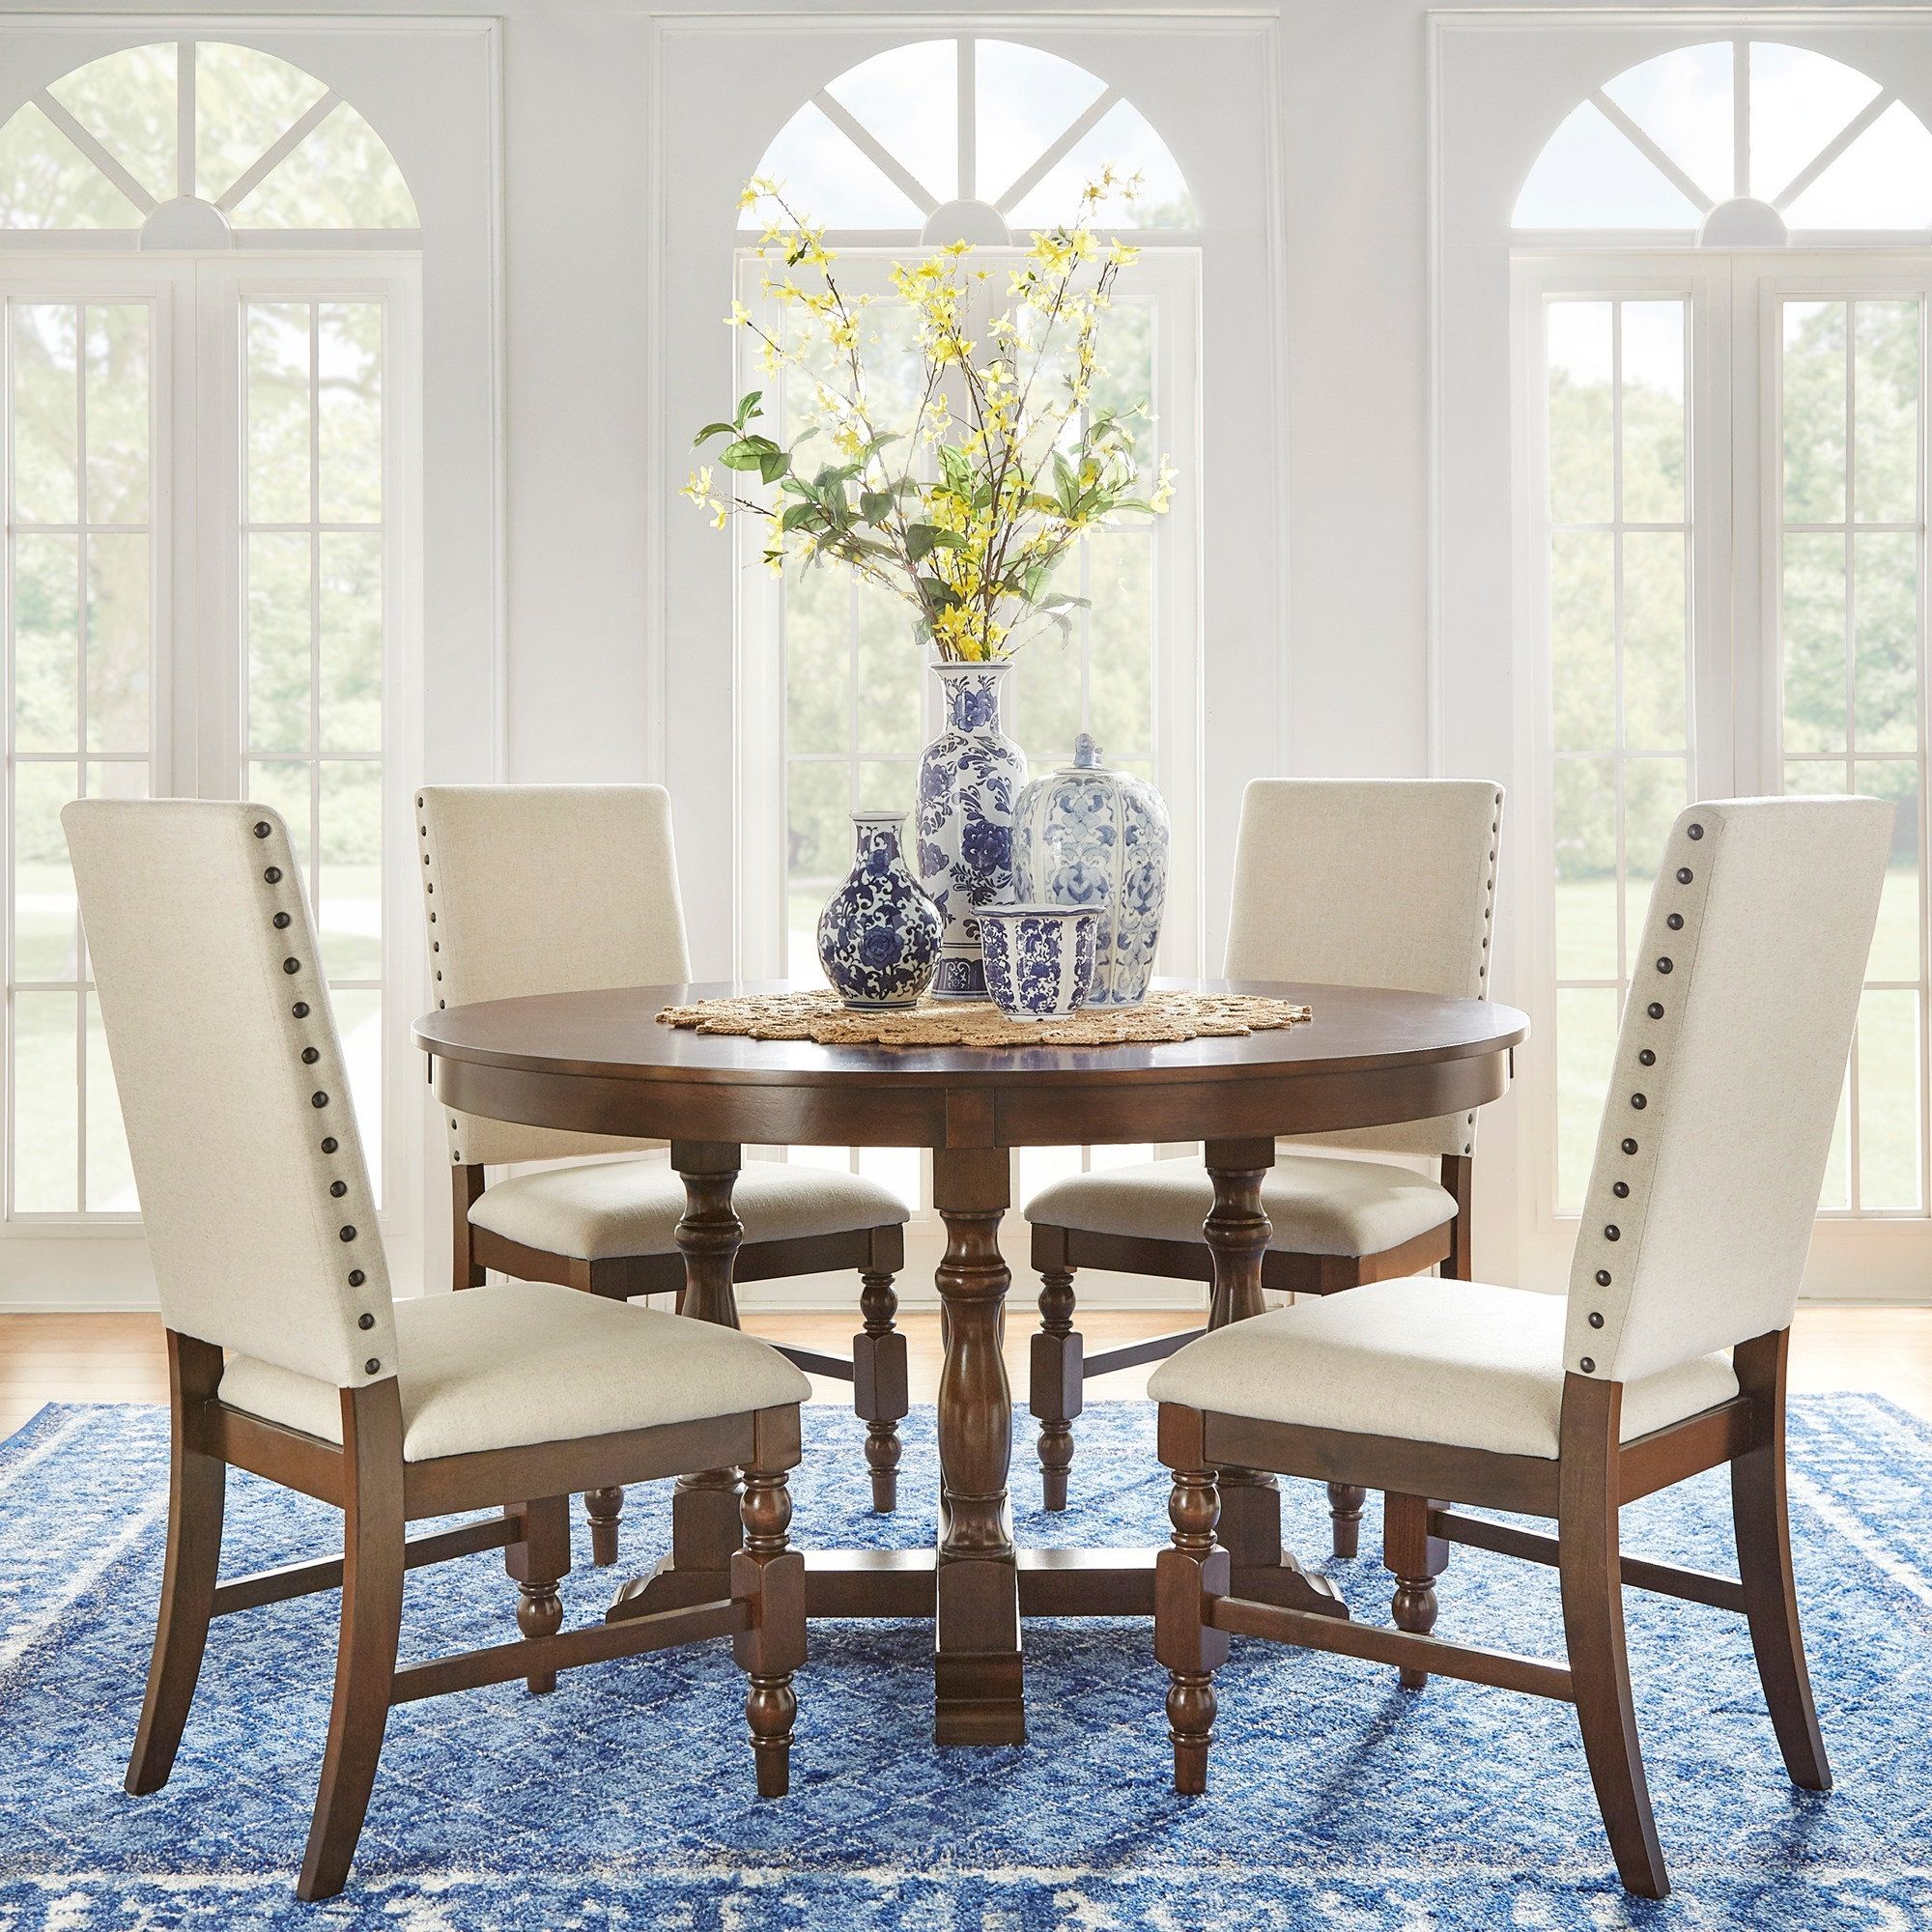 Dining Room Sets: Find the dining room table and chair set that fits both  your